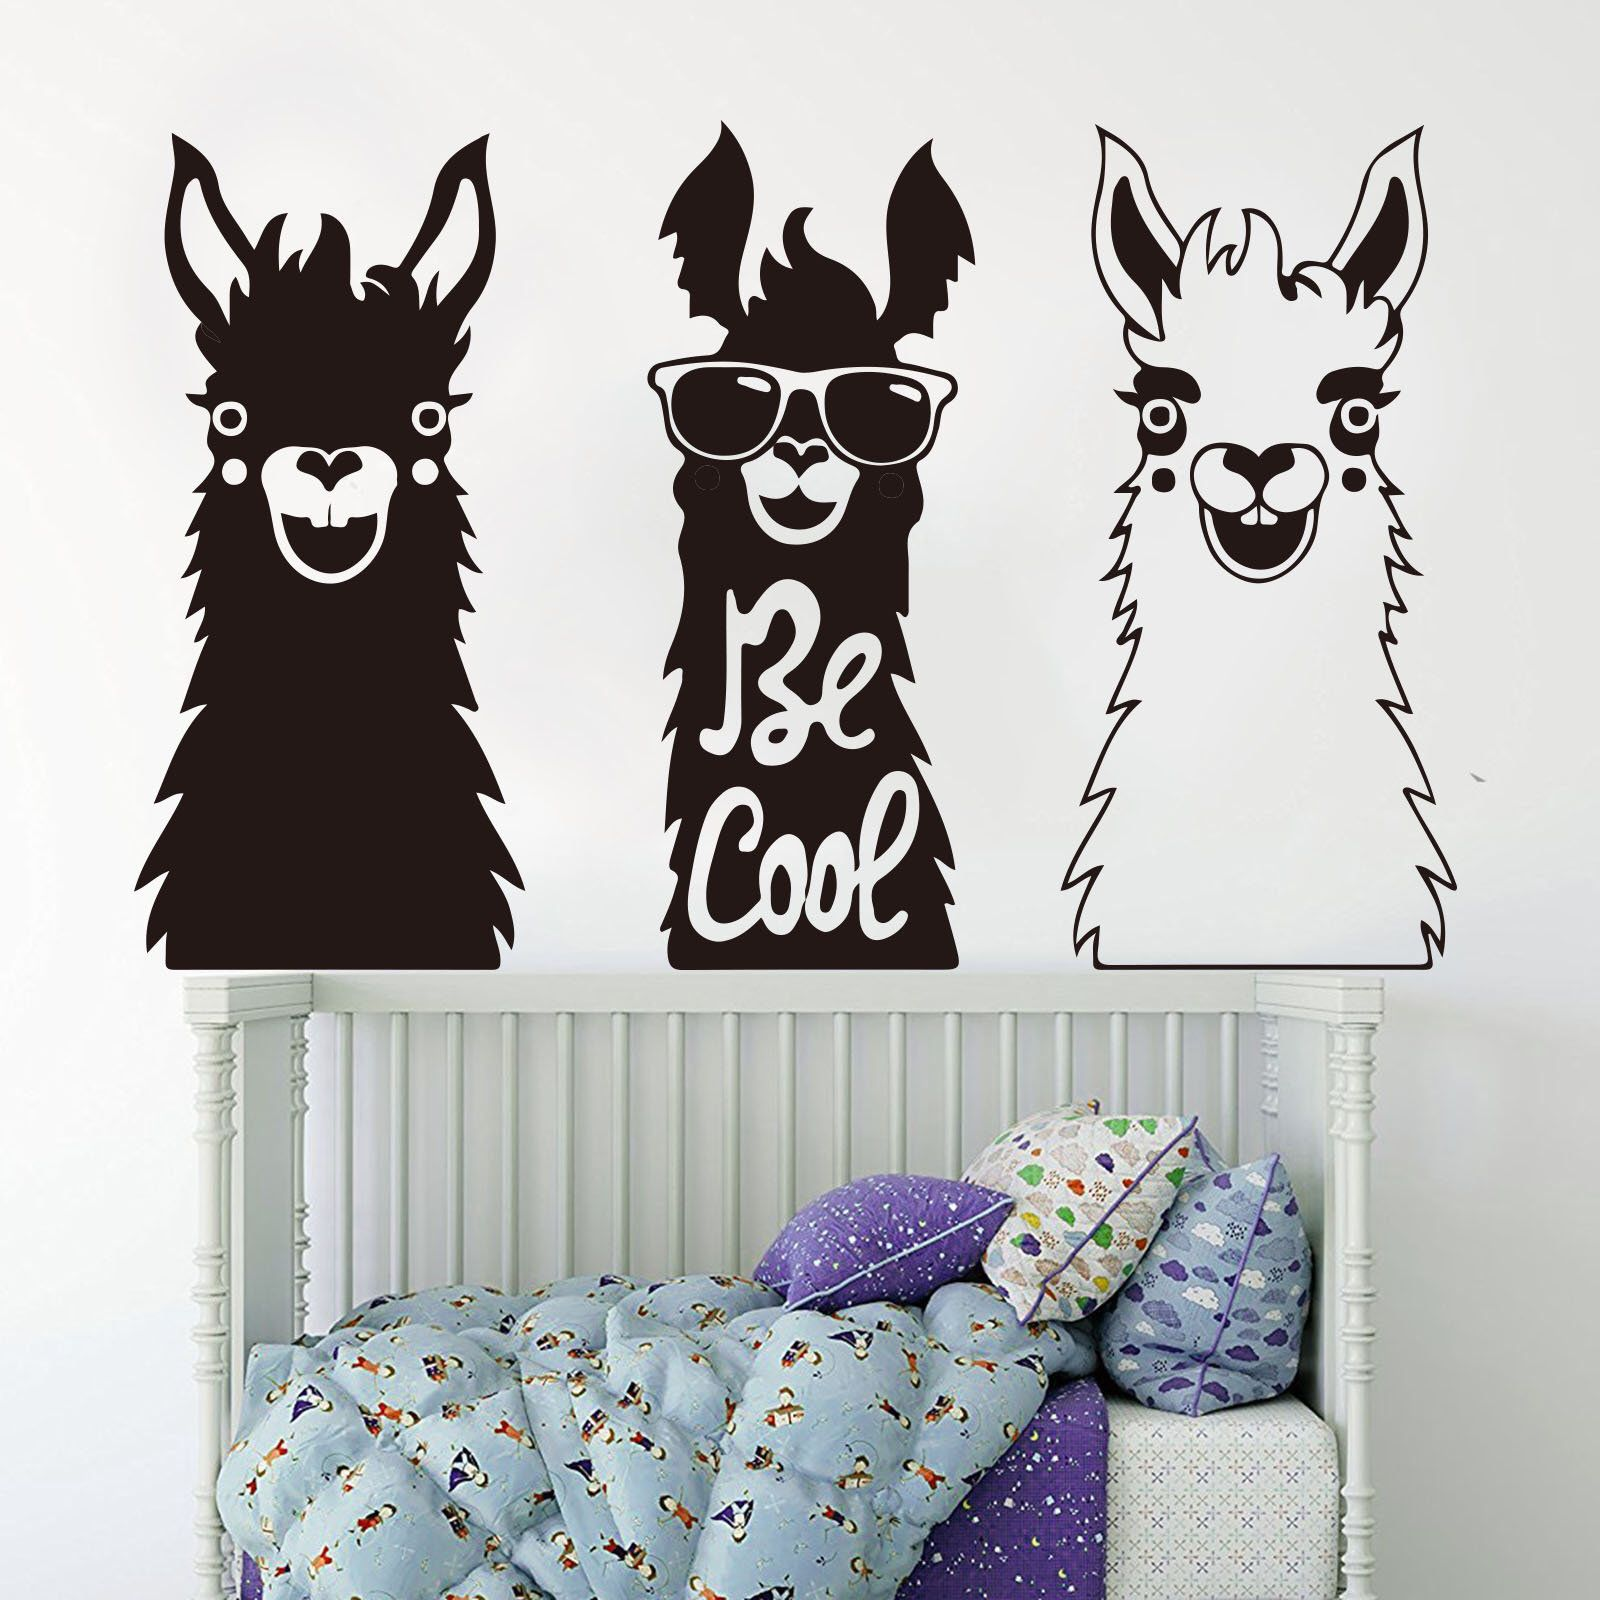 Excited to share the latest addition to my etsy shop set of 3 llama wall decal animal alpaca decalslarge llama alpacas pet zoo wall sticker vinyl art